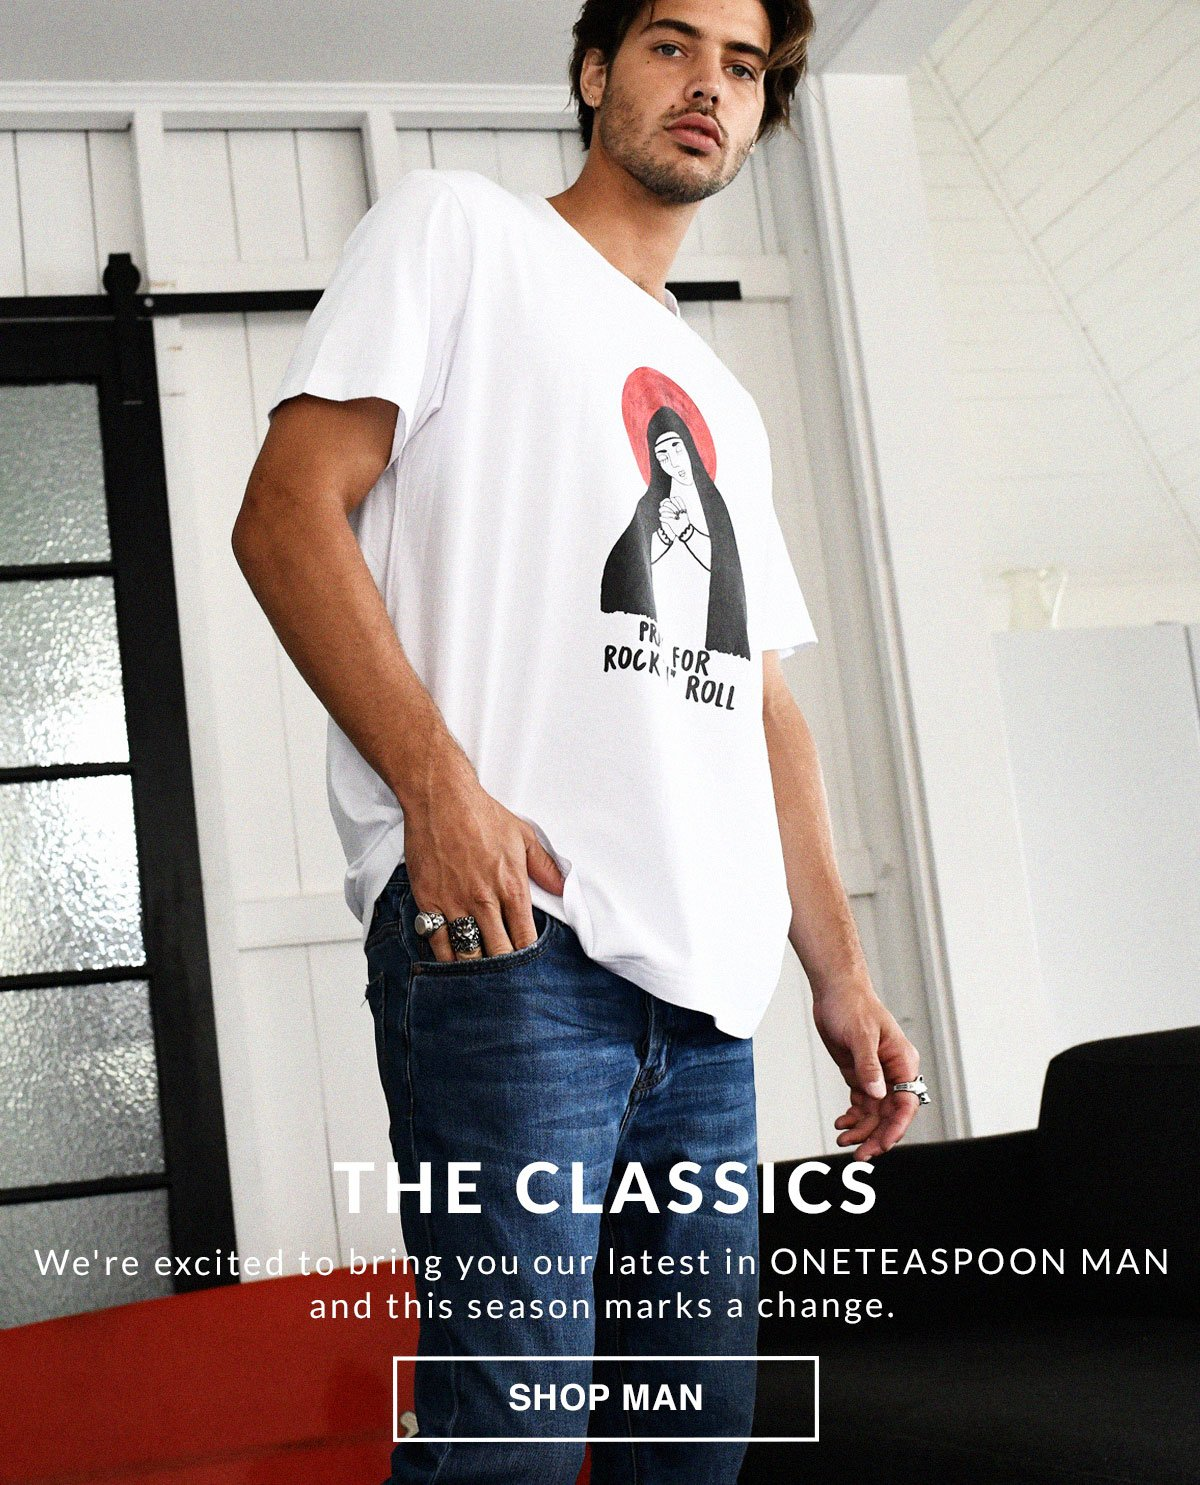 The Classics. New In Man. Shop Now.